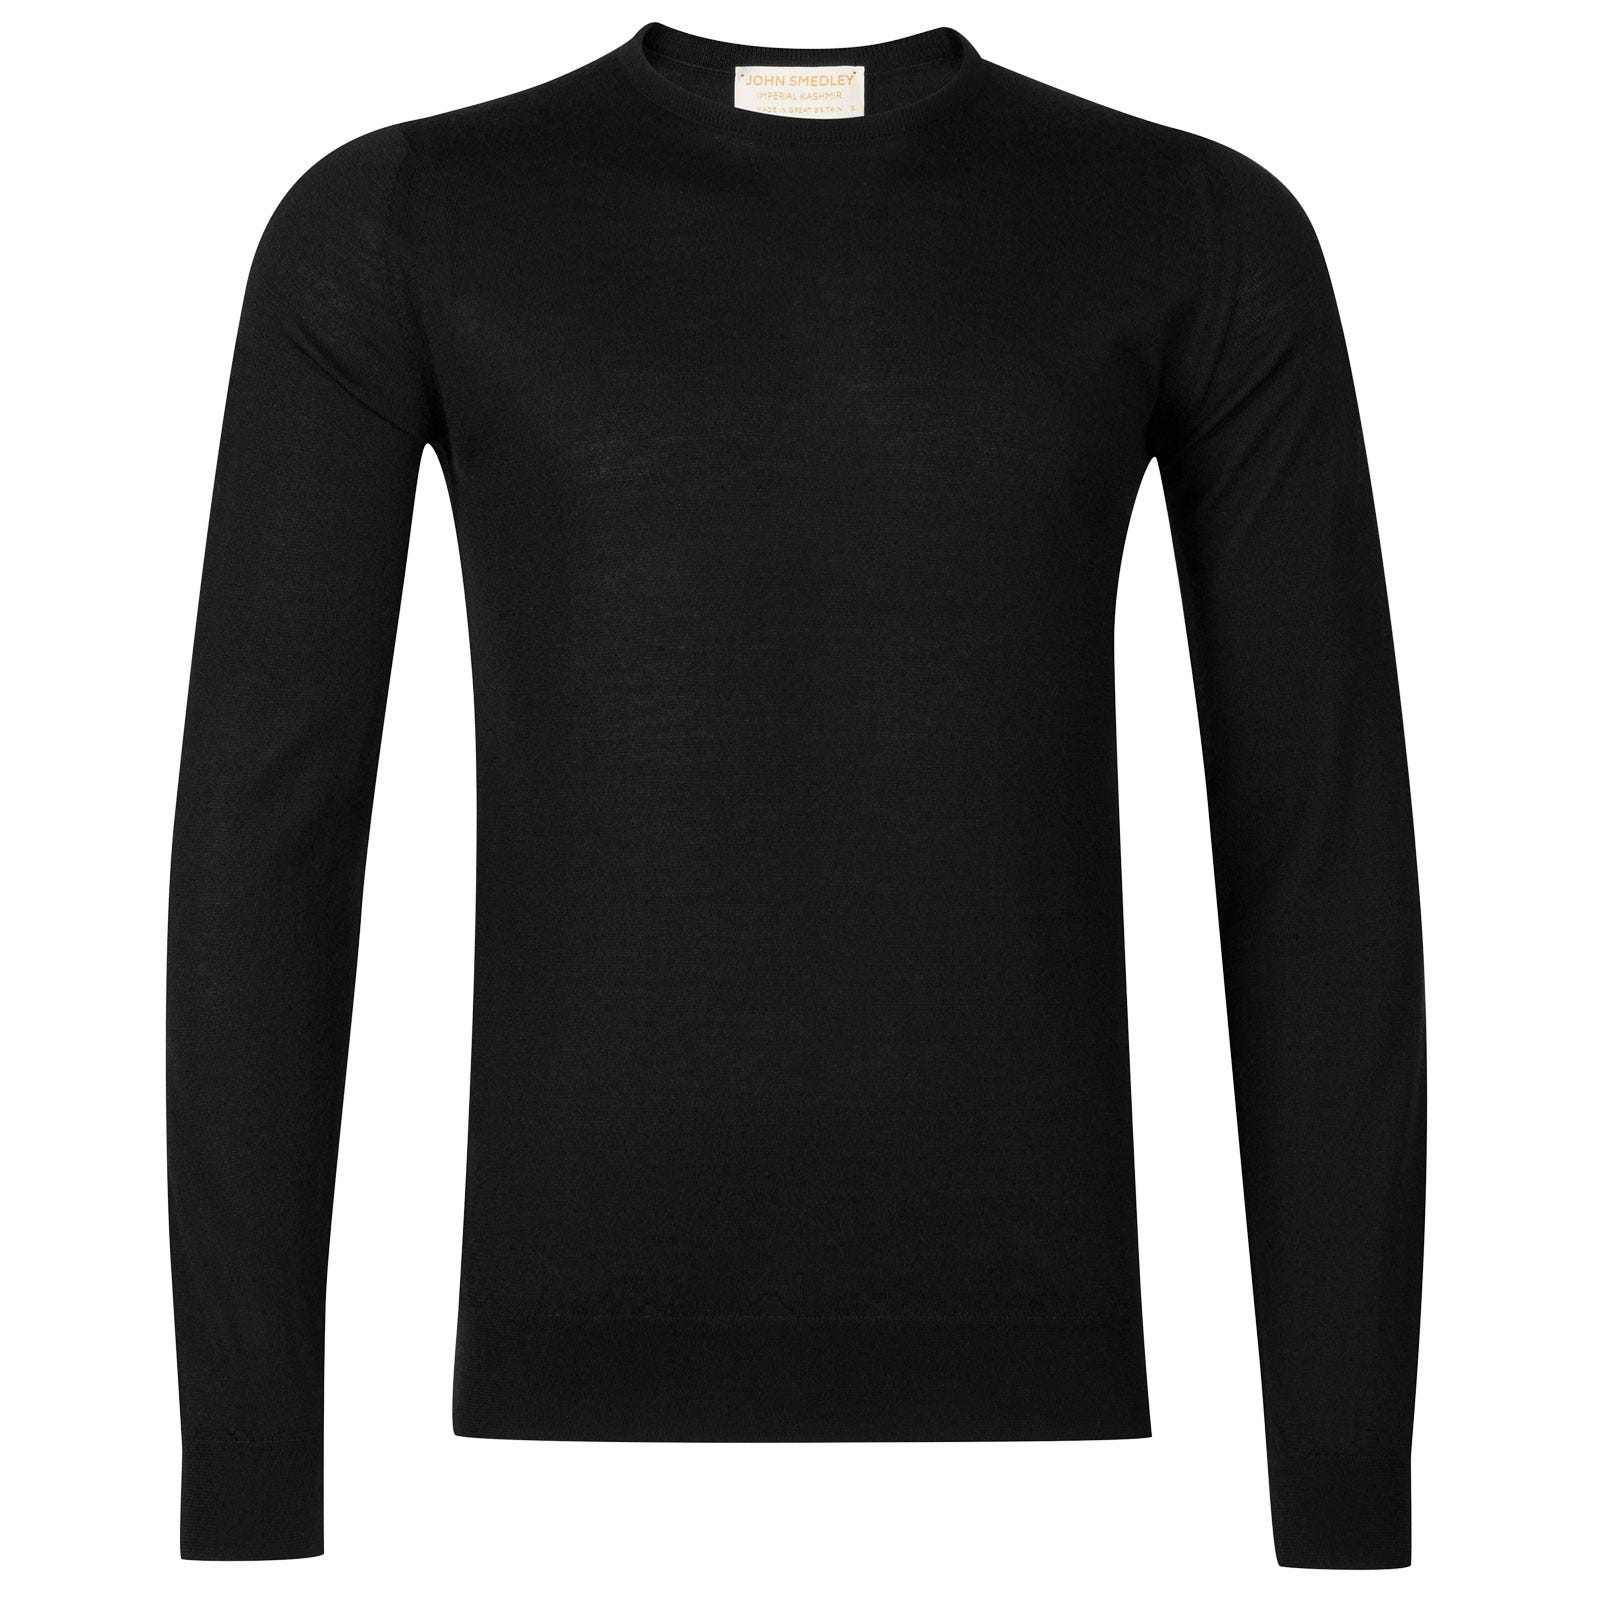 John Smedley Norland Cashmere and Silk Pullover in Black-L